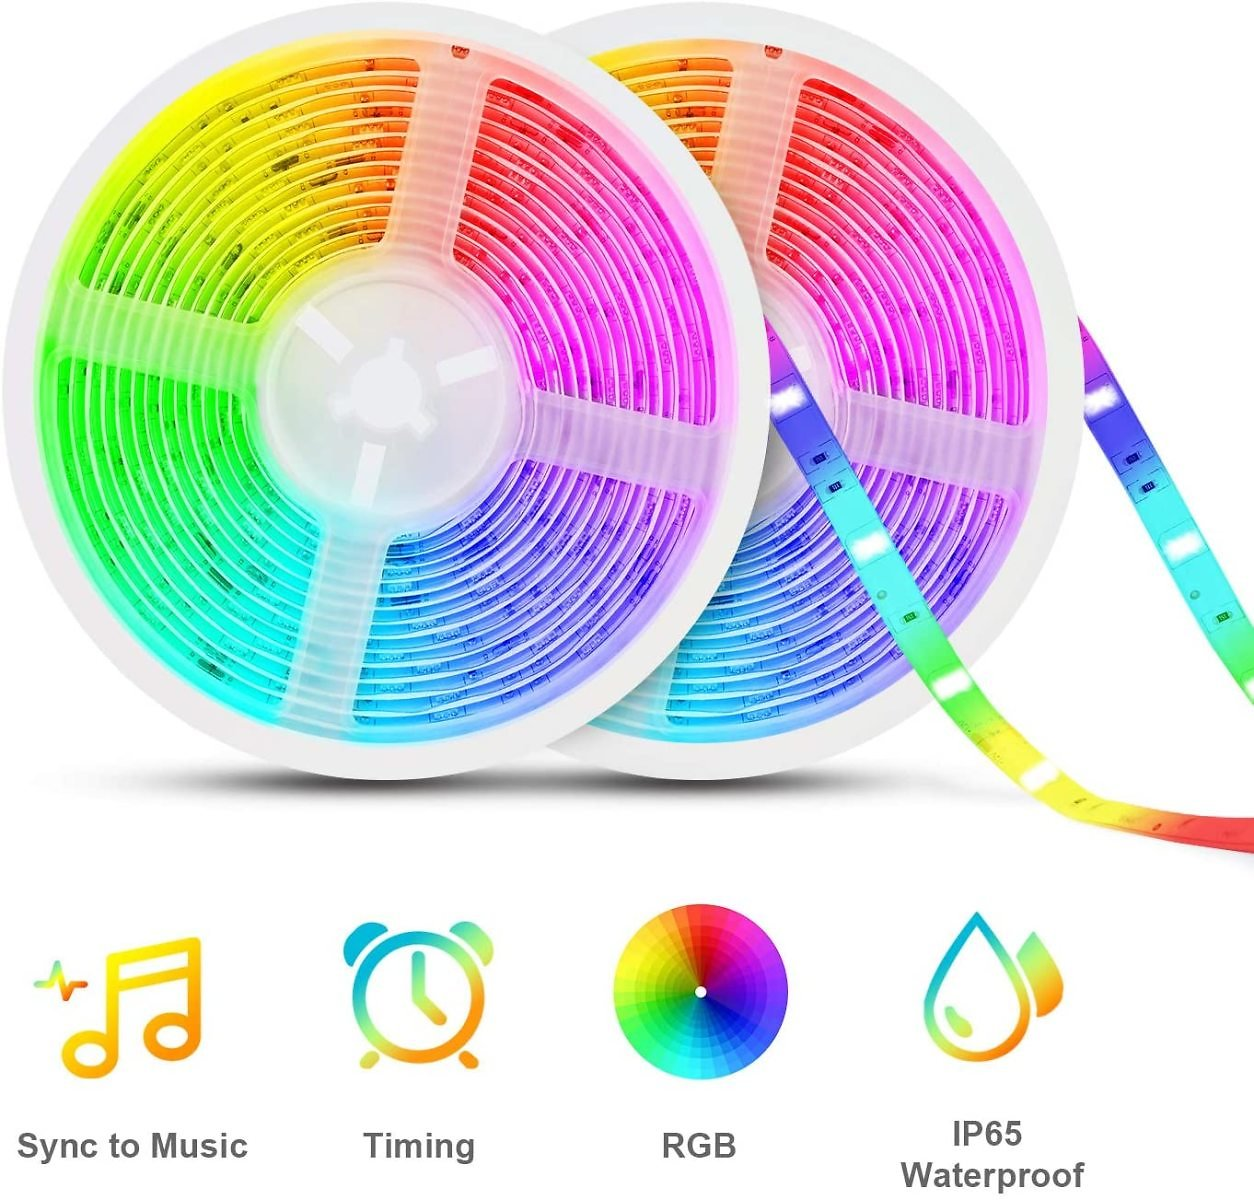 Led Strip Lights Sync to Music, Tasmor 32.8ft 5050 RGB Light Color Changing with Music IP65 Waterproof LED Rope Light with Contr